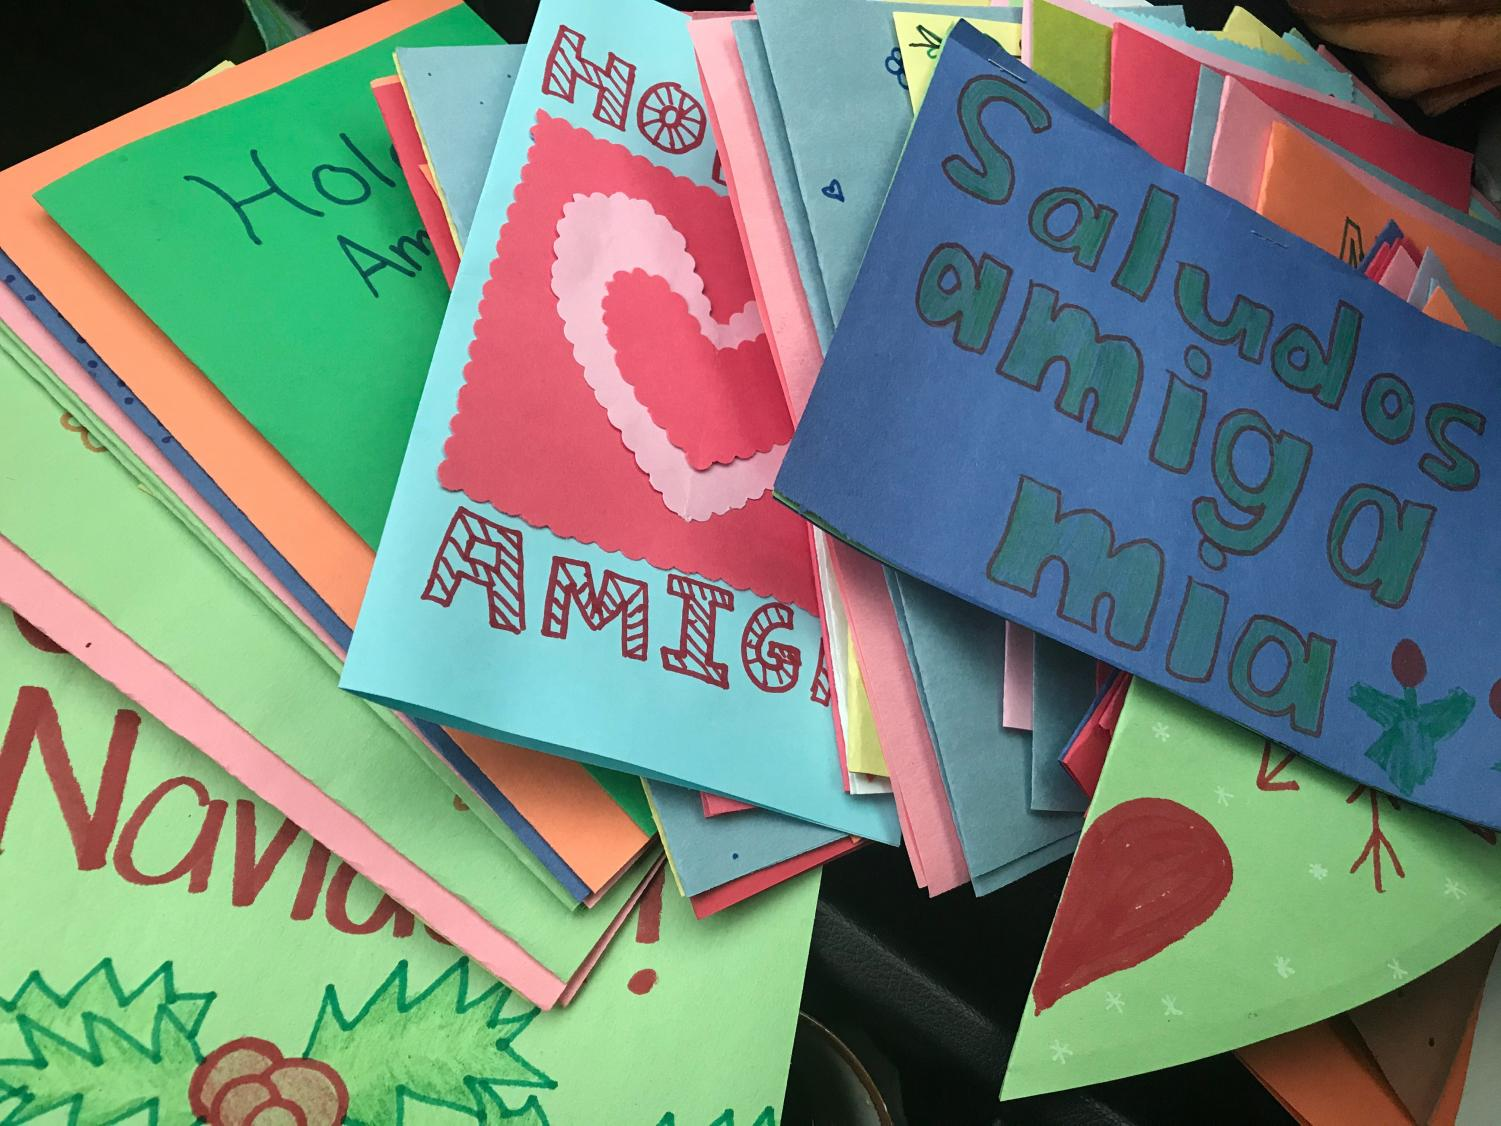 Spanish students send cards to inspire women and children at the border.